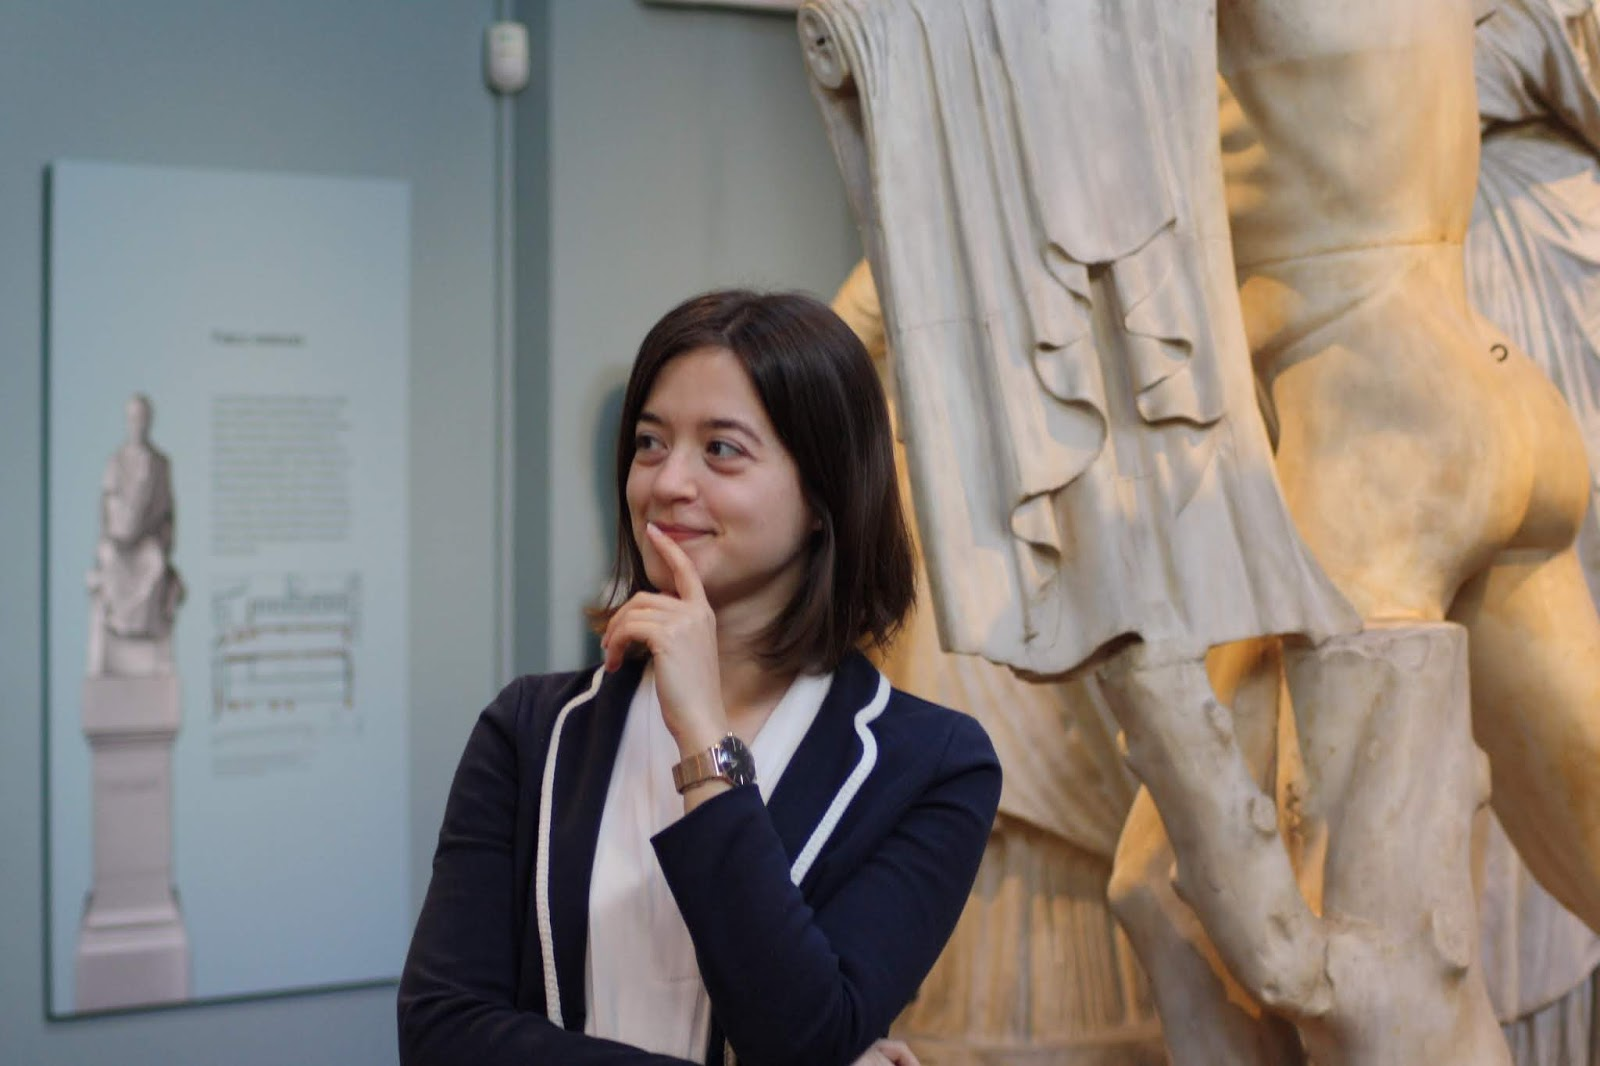 PhD student first year experience museum ashmolean gallery